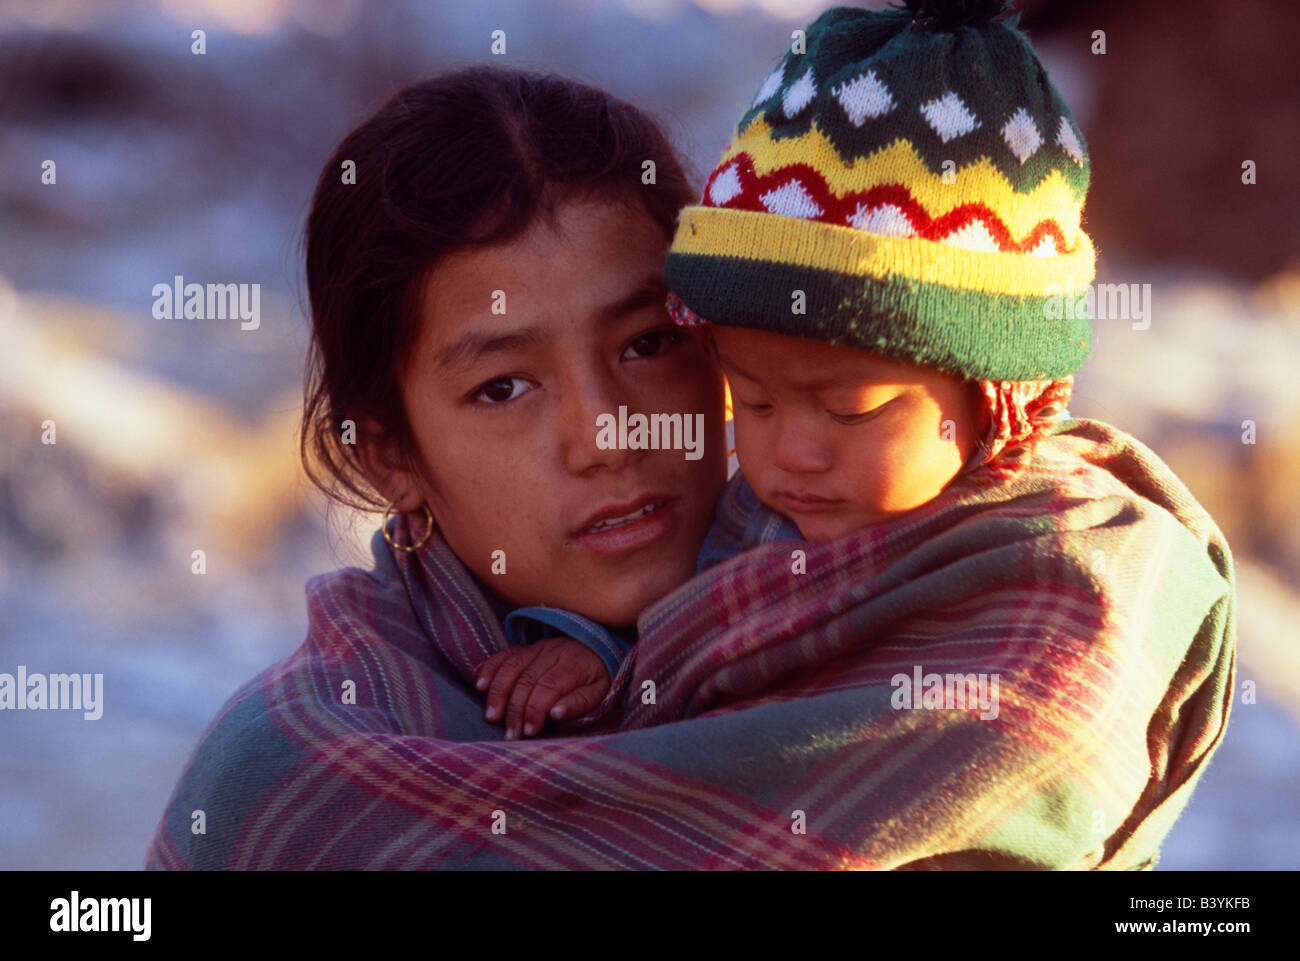 Nepali mother child nepal stock photos nepali mother child nepal nepal annapurna nepali woman and baby on the approach to machhapuchhare stock image ccuart Images